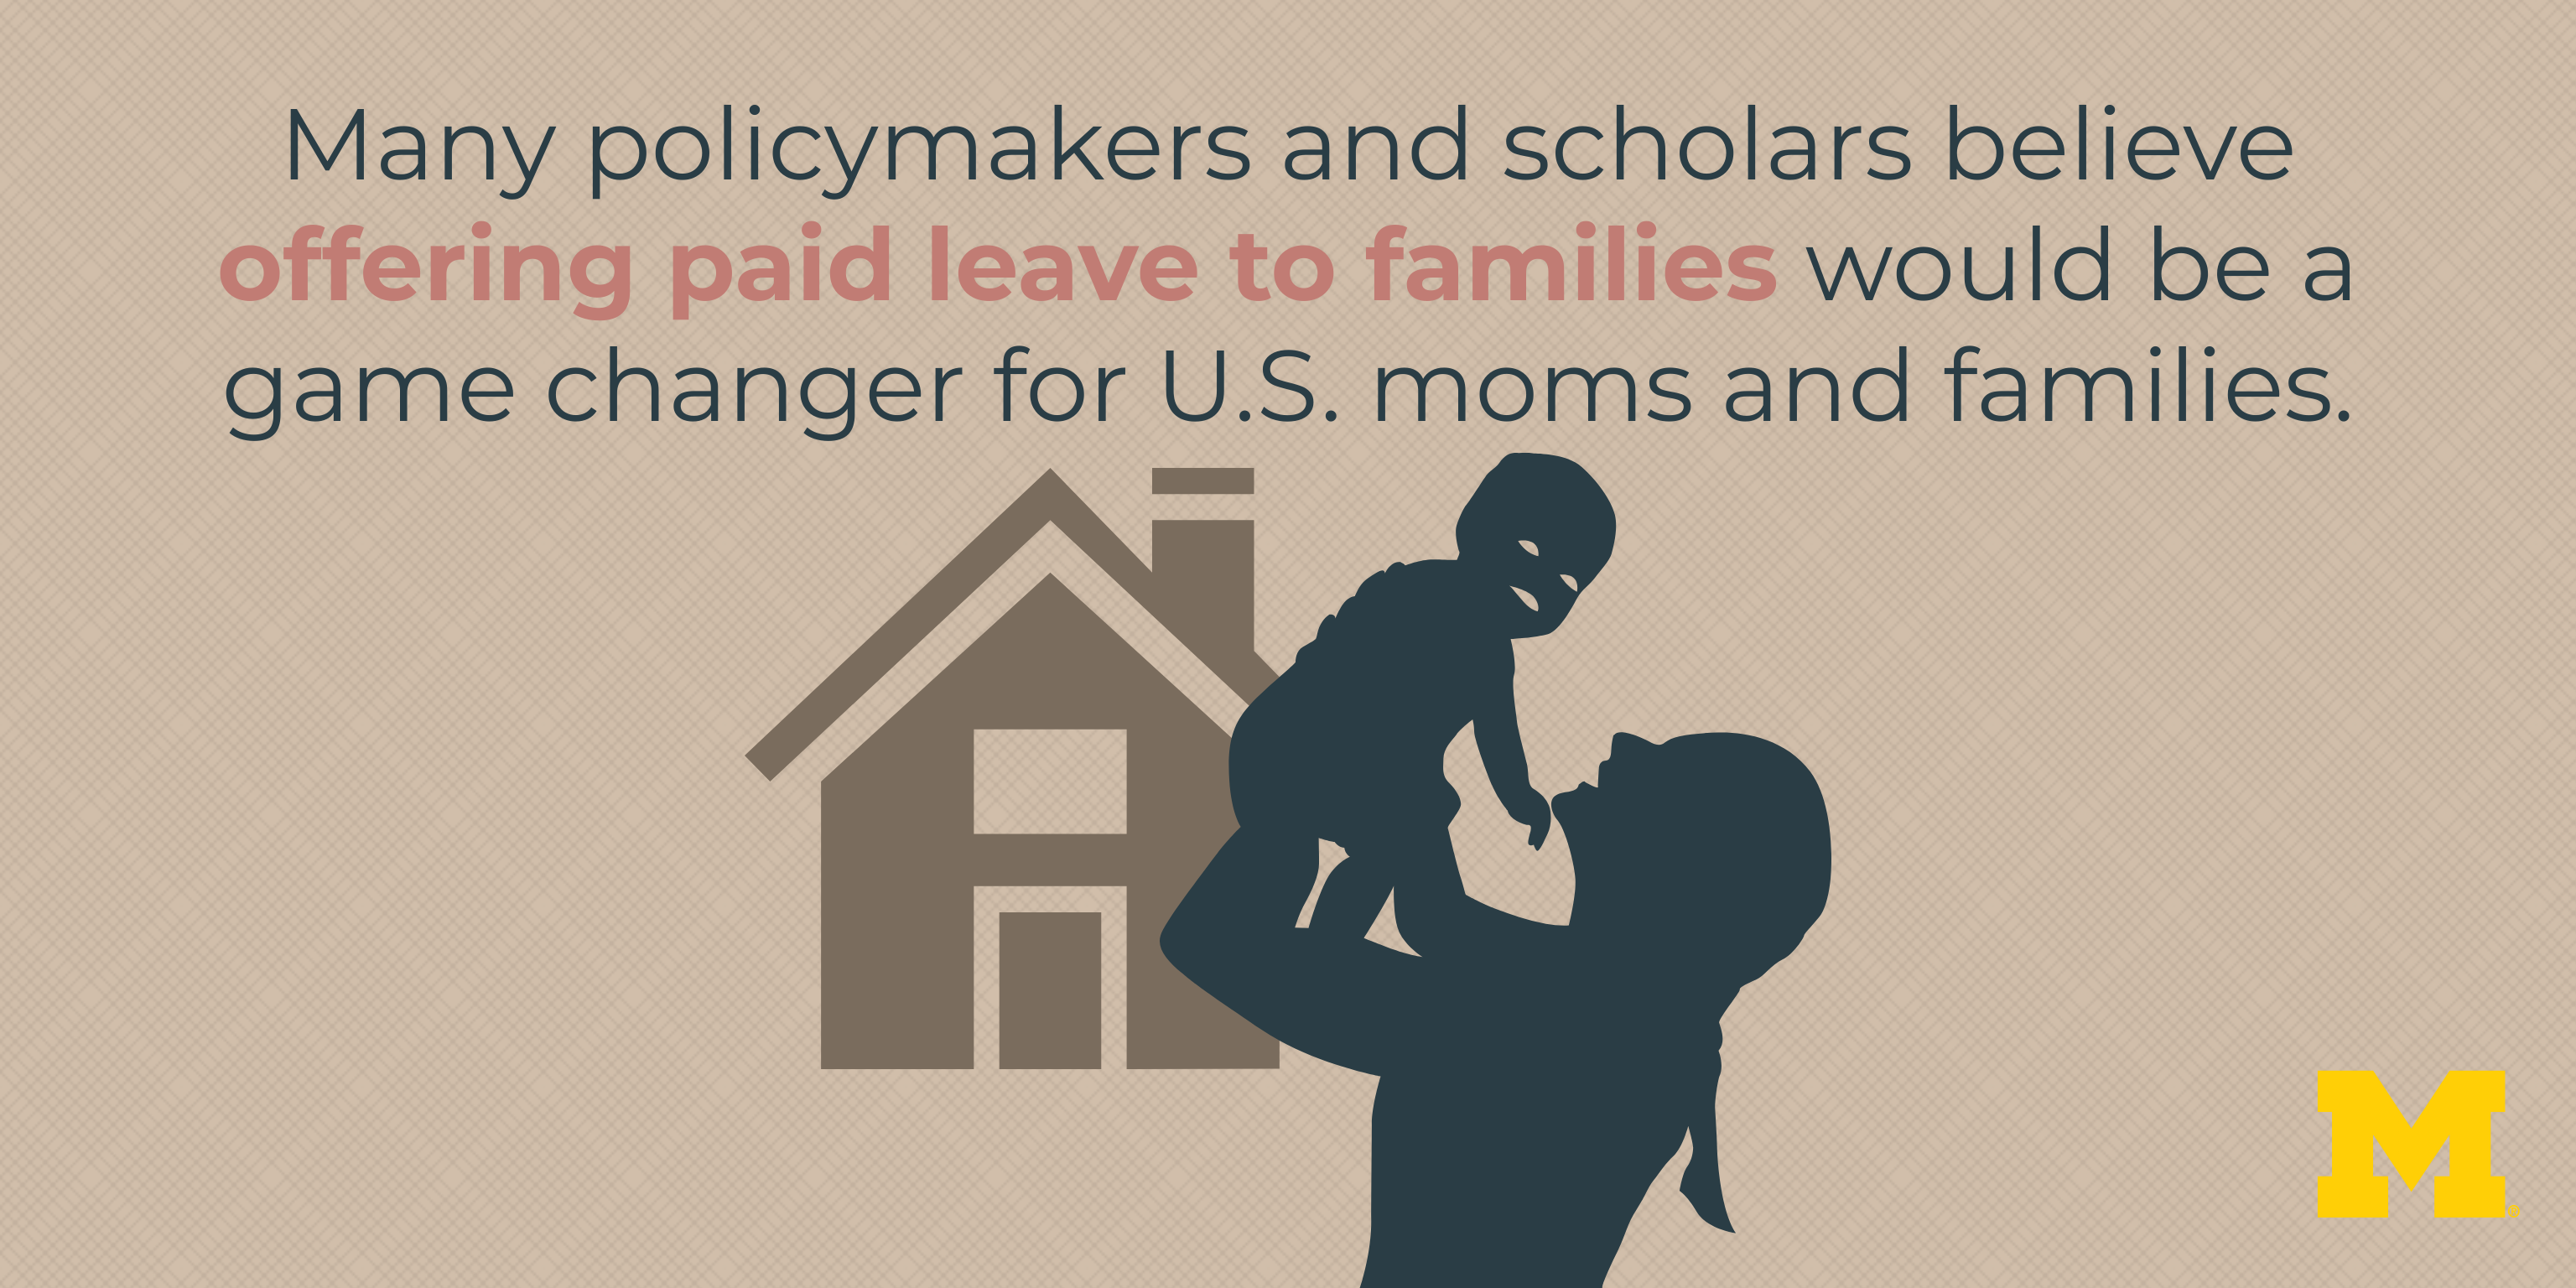 Many policymakers and scholars believe offering paid leave to families would be a game changer for U.S. moms and families.